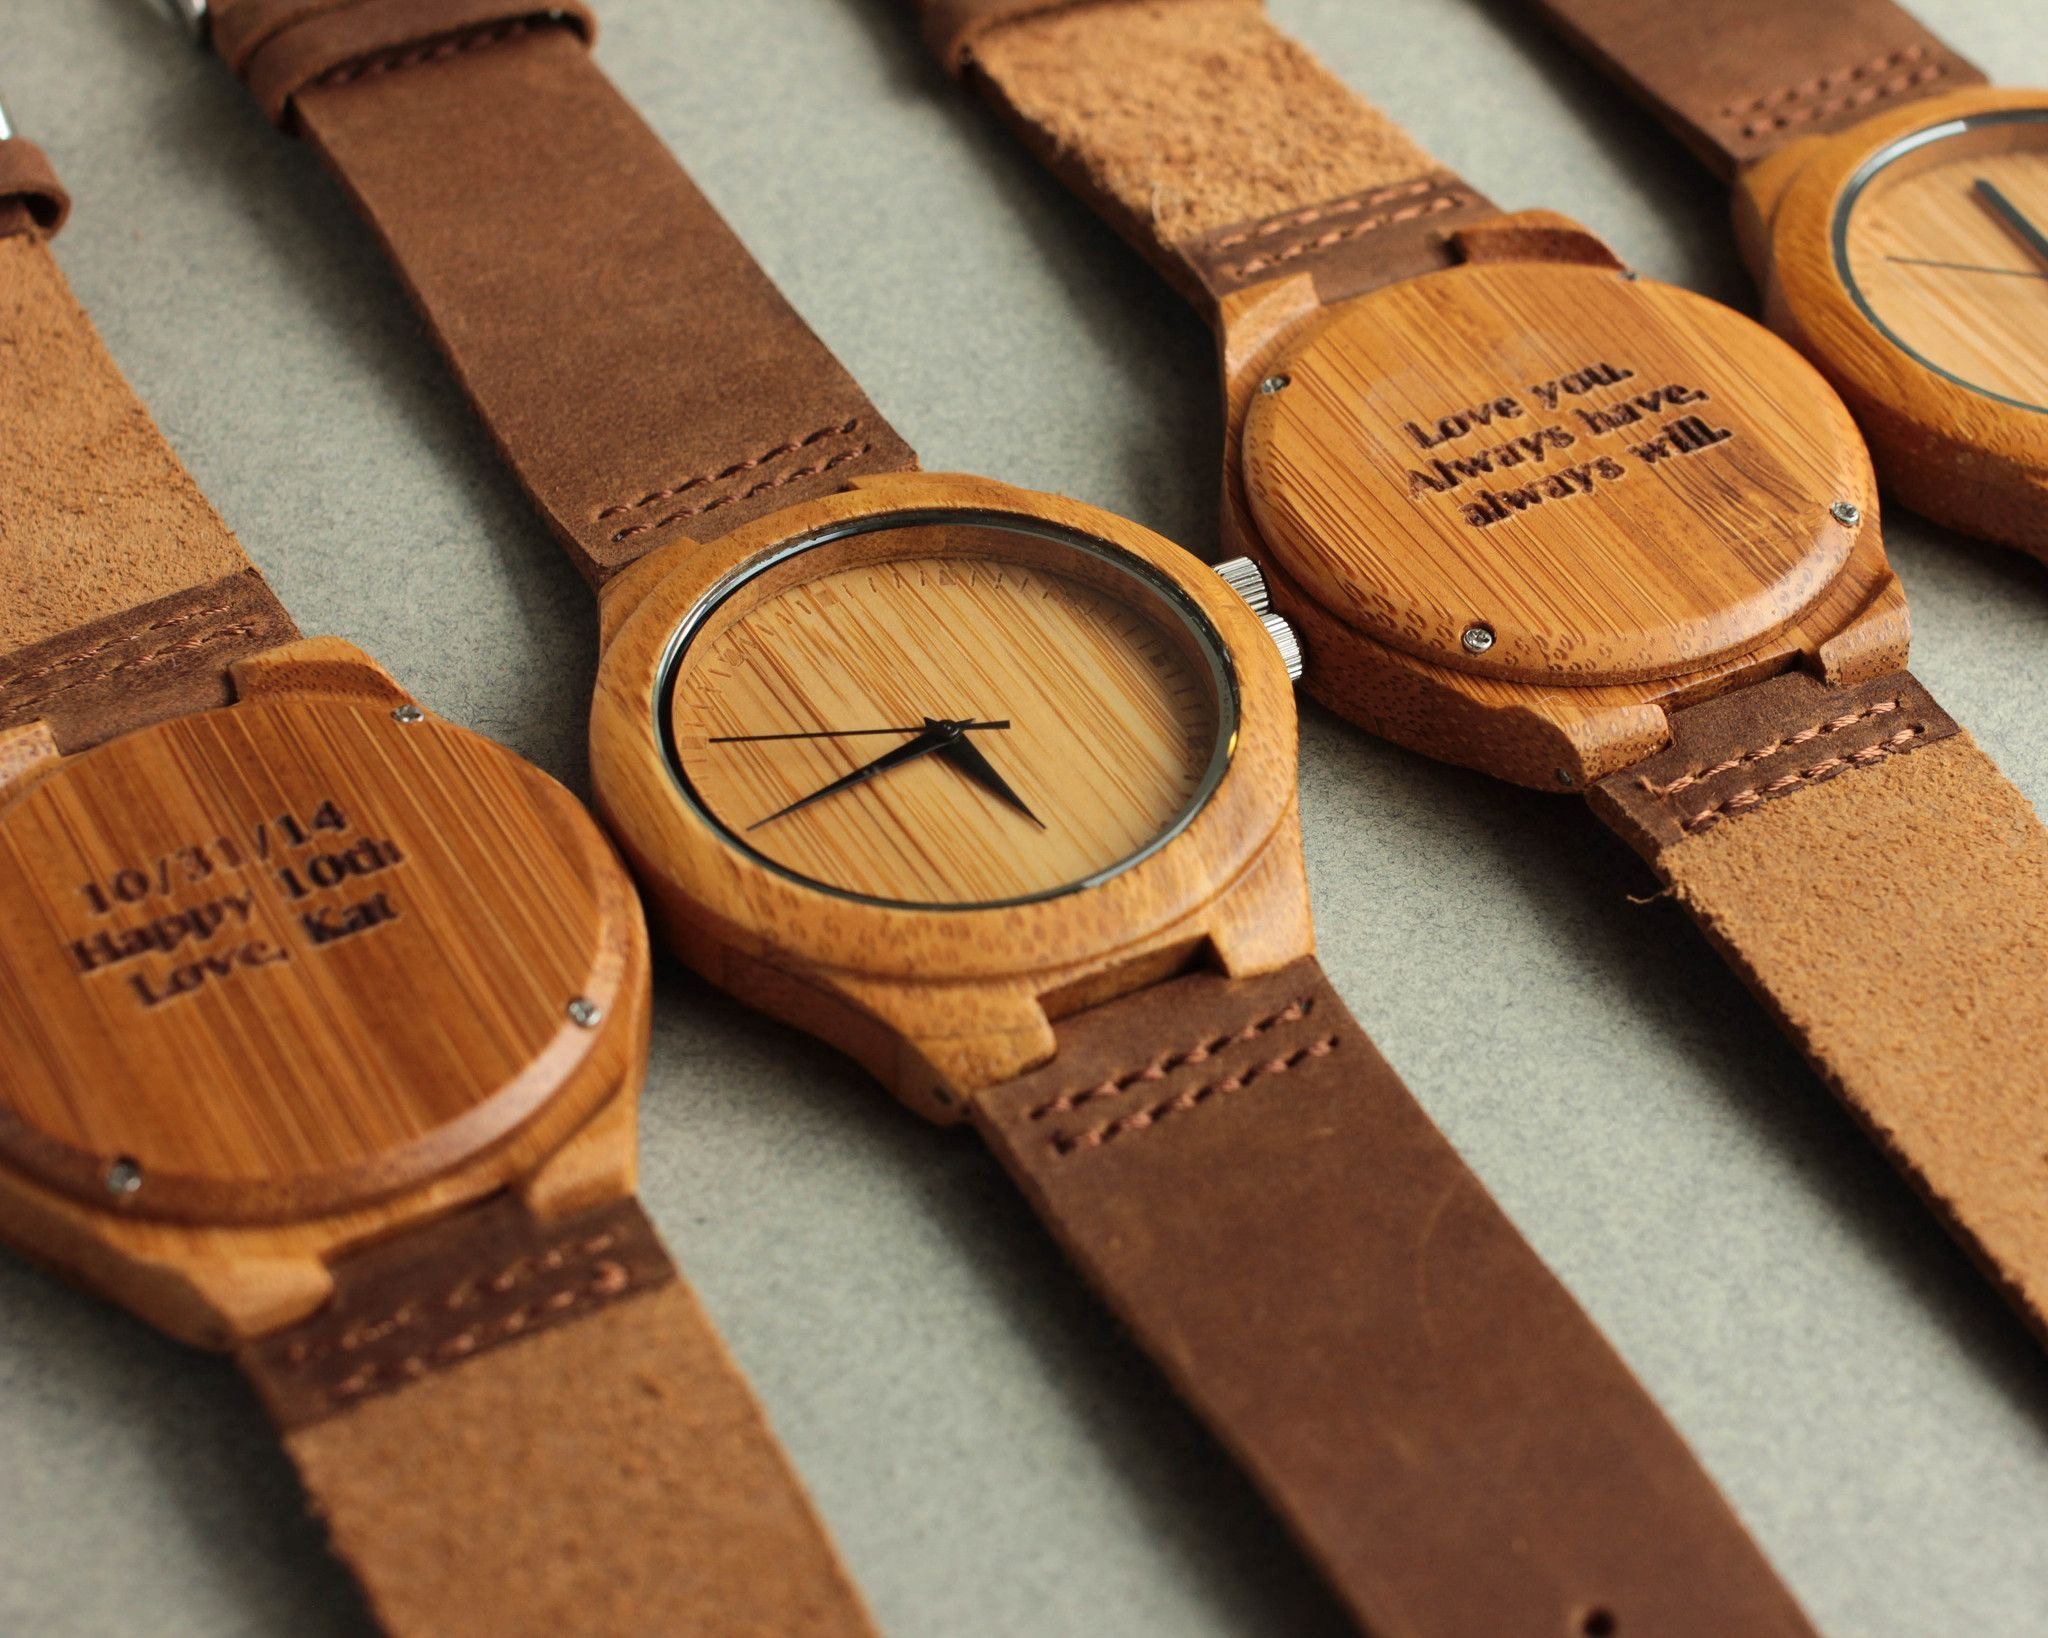 fully custom photo and customizable engraved projects possibilities watches with unique design made wooden use watch laser infinite woodburn wood original by a